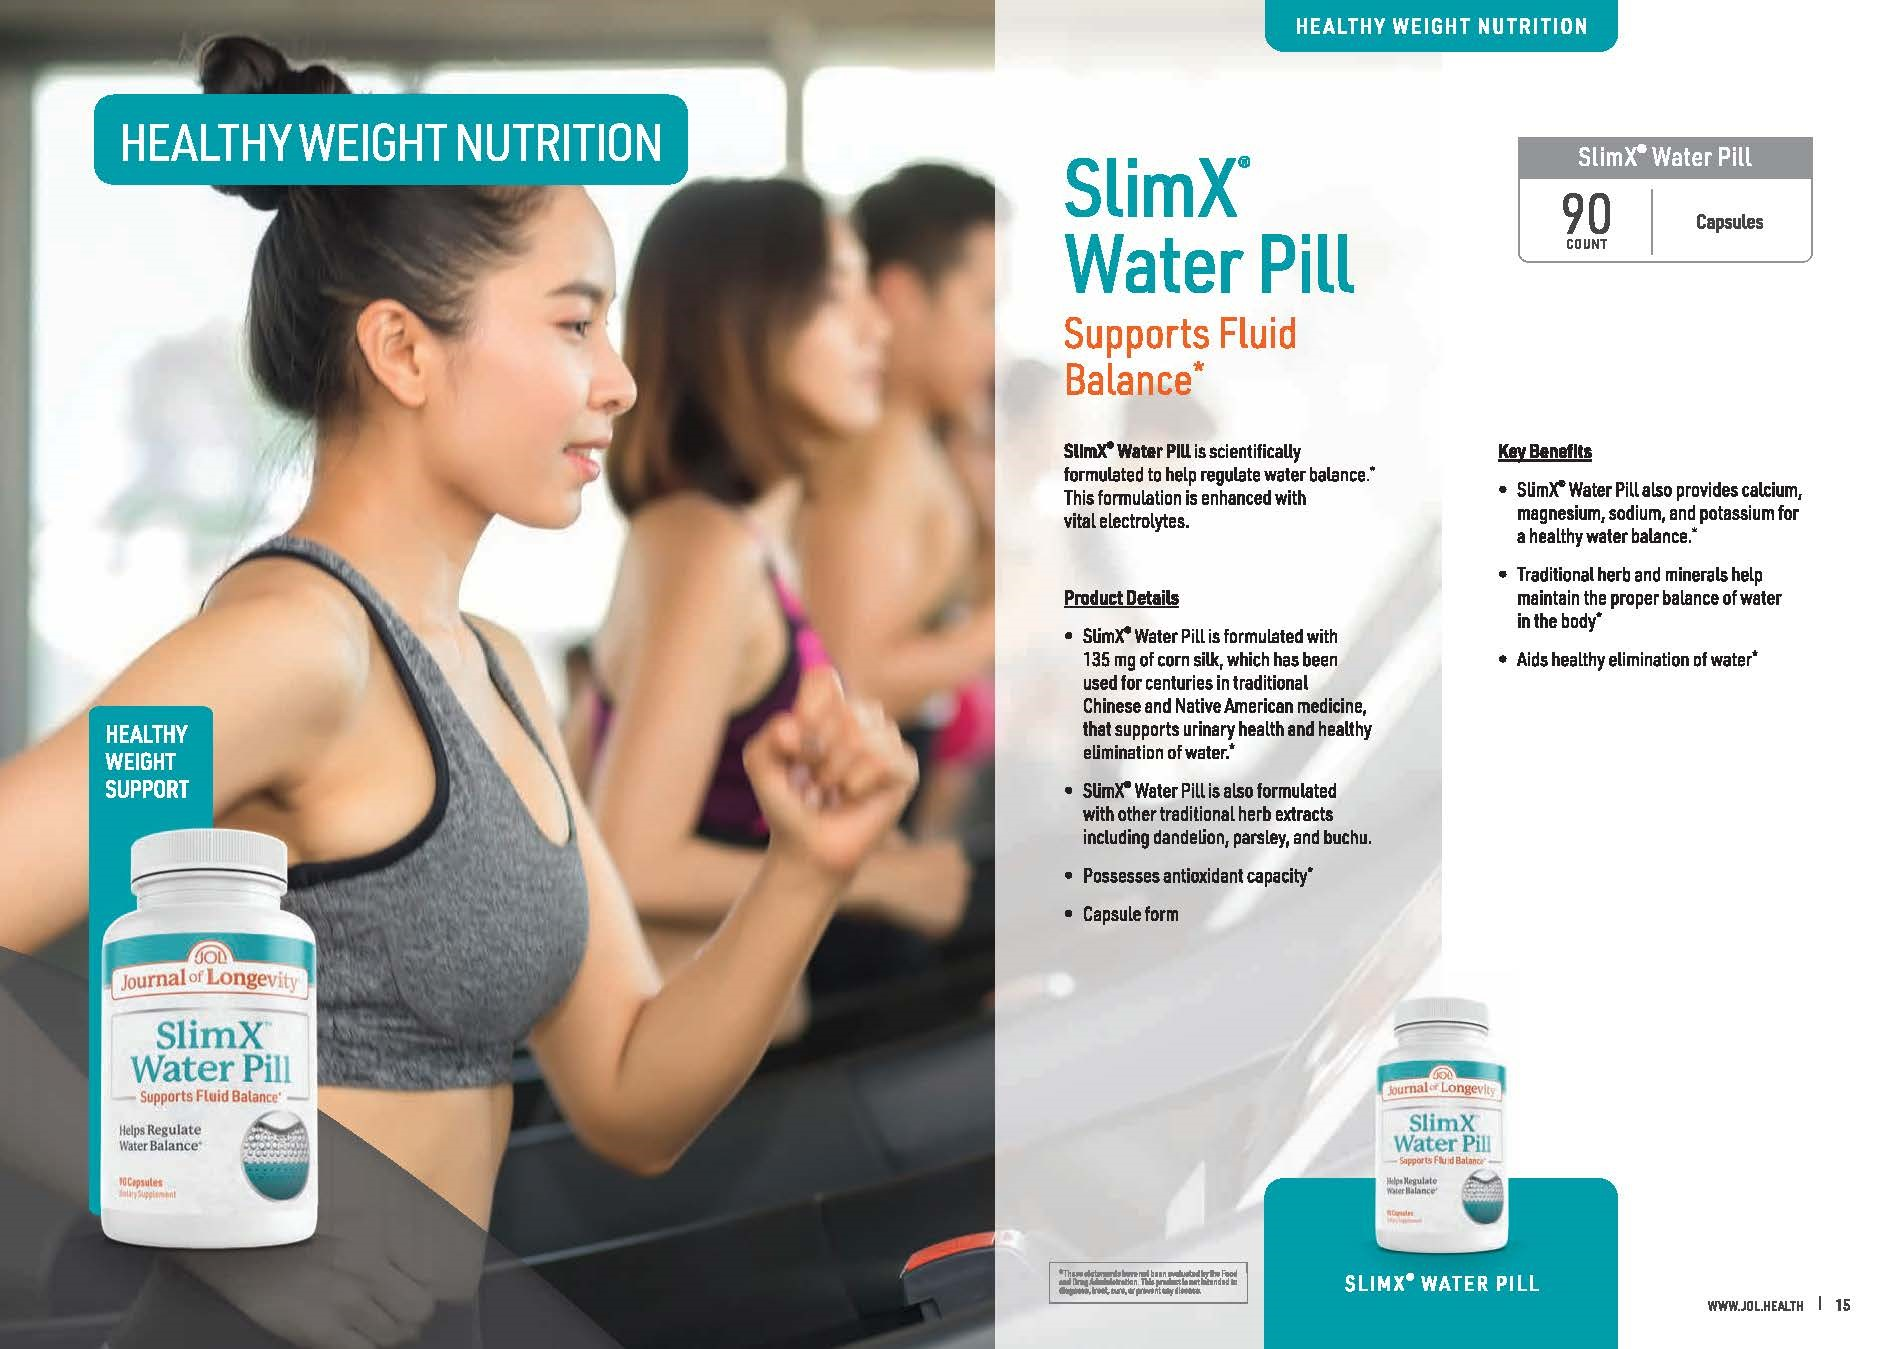 Journal of Longevity Slim X Water Pill Capsule Vitamin to Support Healthy Elimination of Water